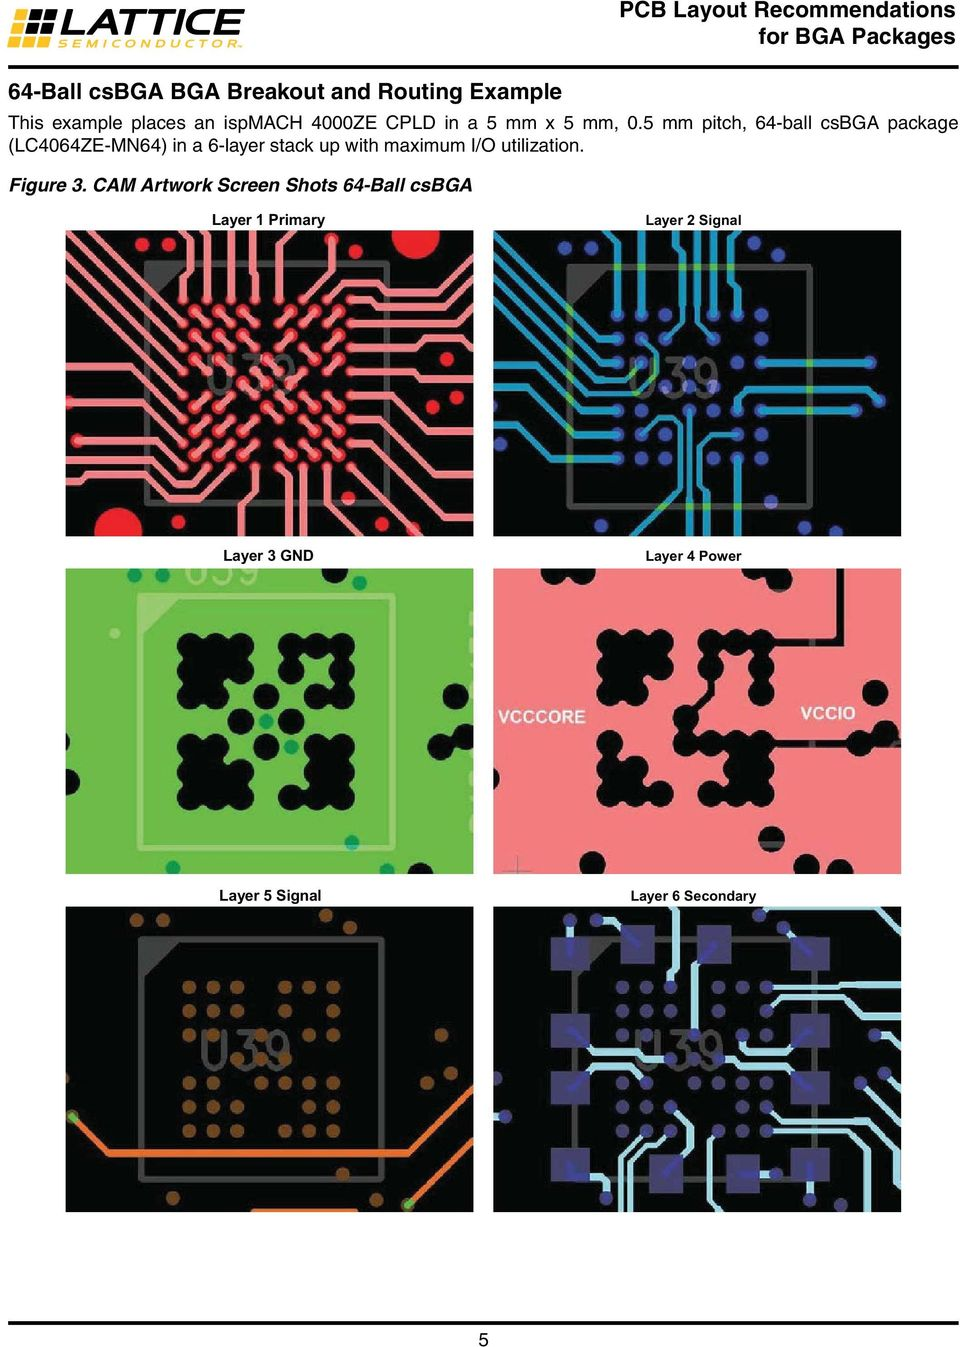 Pcb Layout Recommendations For Bga Packages Pdf Mount 4 Layers Fr4 Timer Printed Circuit Boards Design Of Hdi 5 Mm Pitch 64 Ball Csbga Package Lc4064ze Mn64 In A